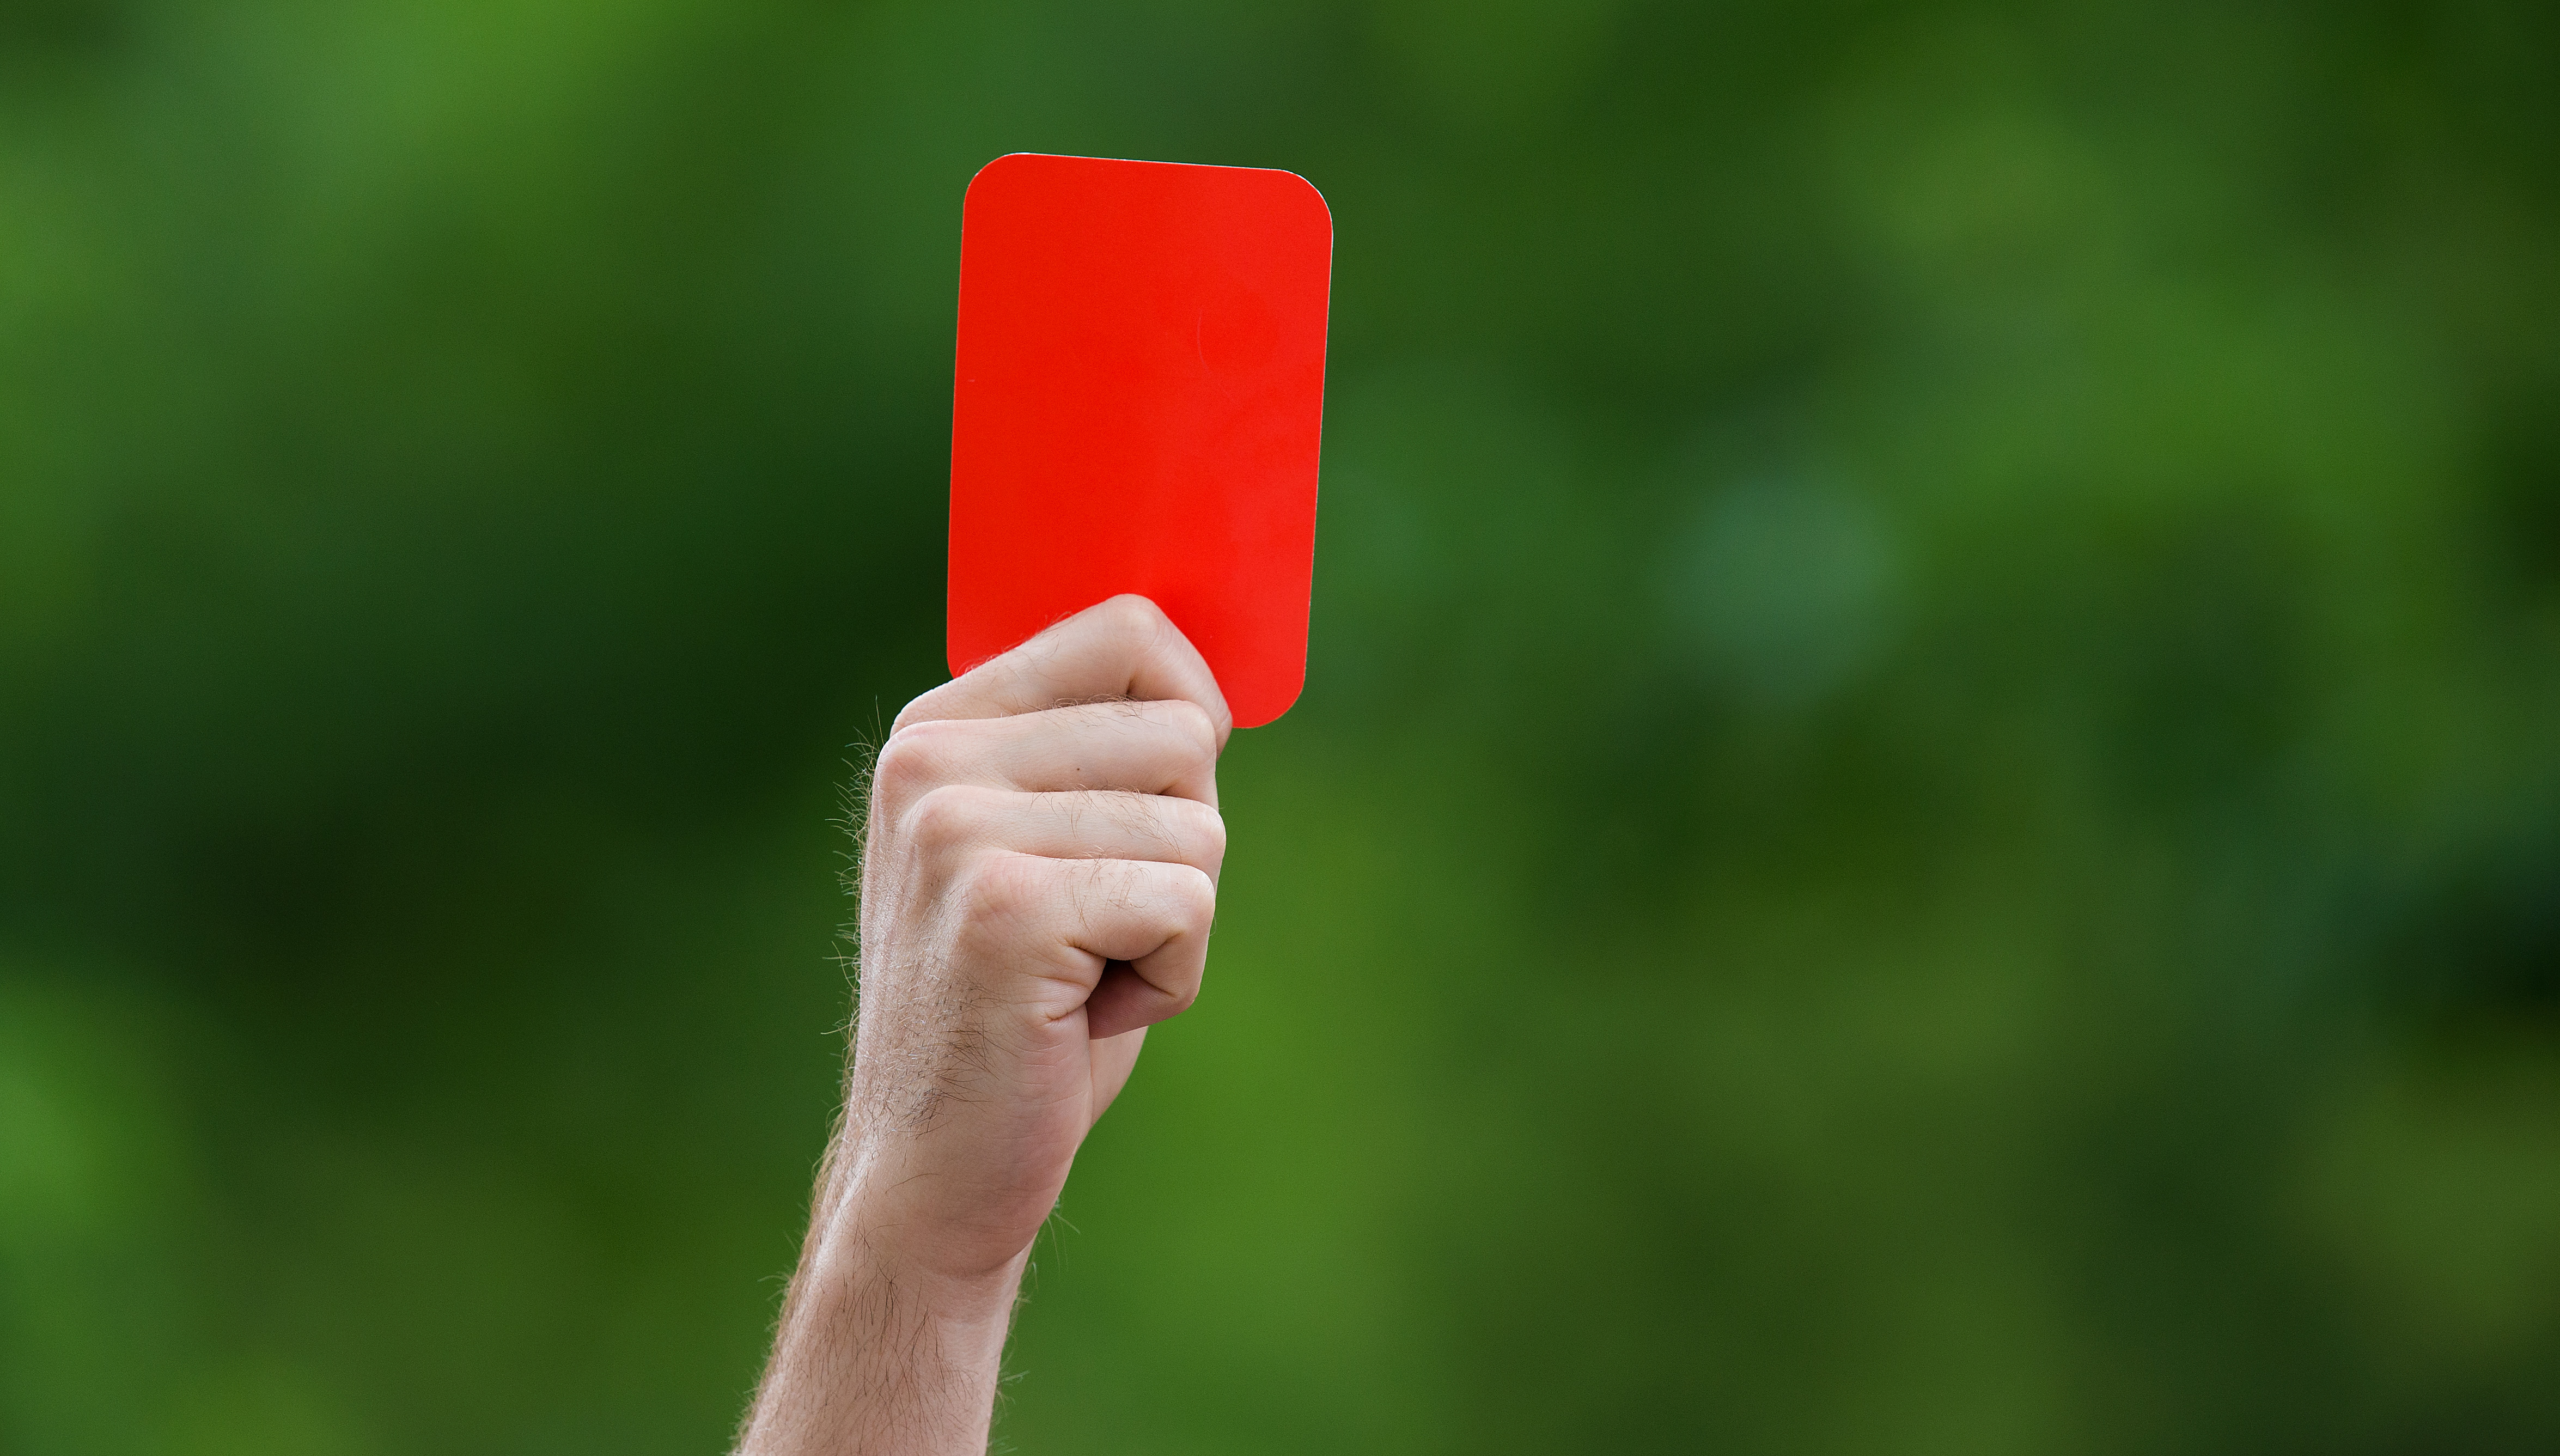 show irishness the red card the clumpany